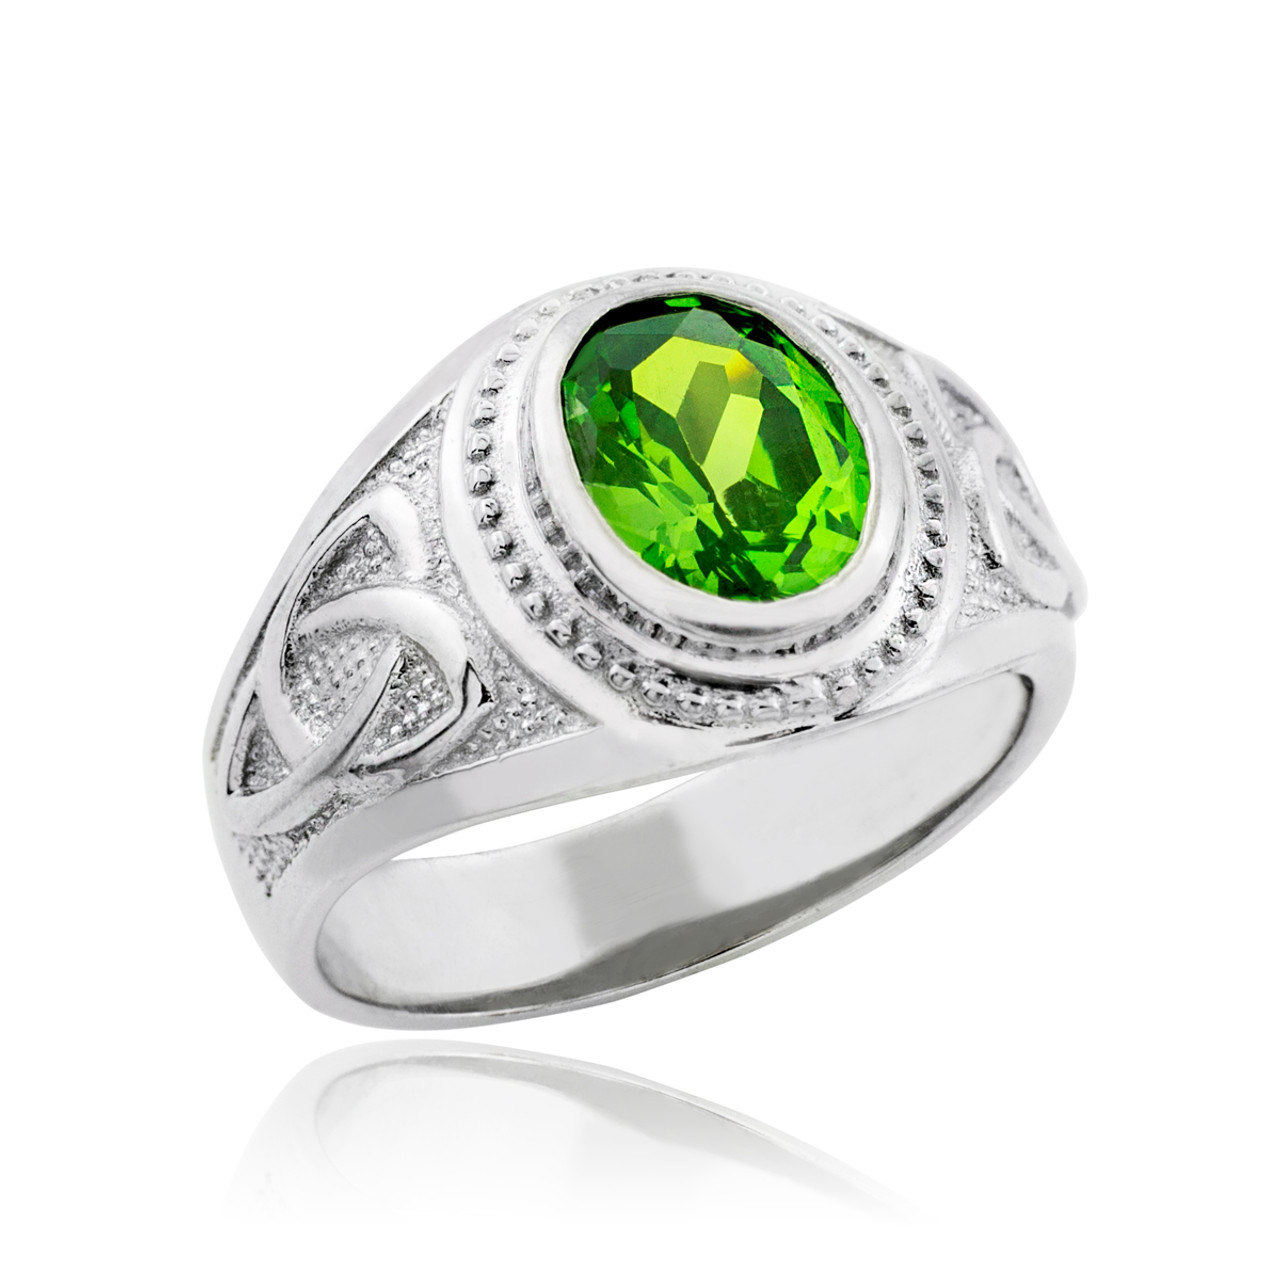 sportun rings fresh anne products gold green diamond ring emerald